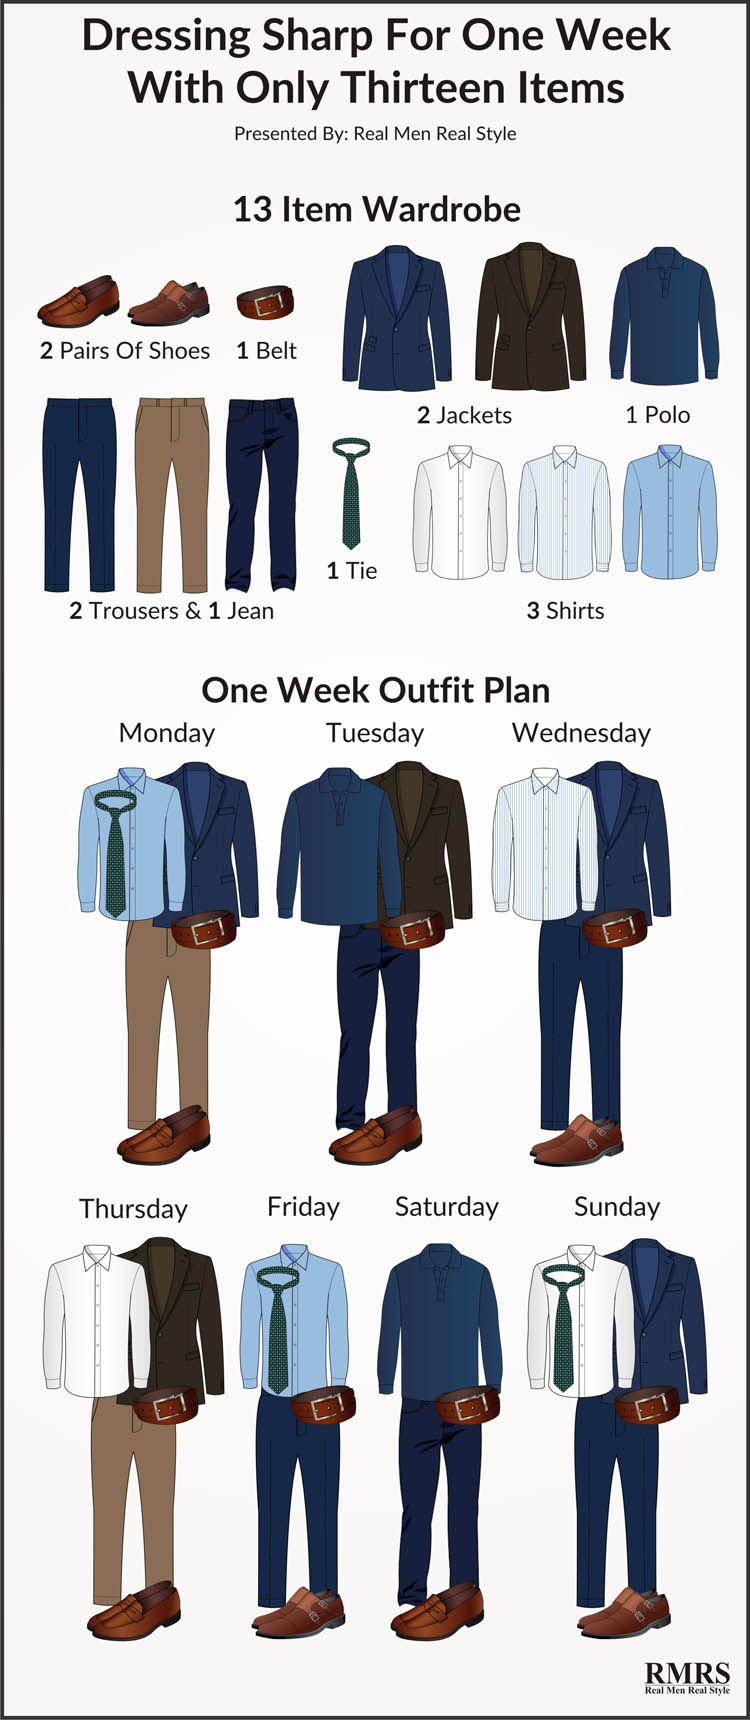 Moda Guardaroba Maschile 13 Item Interchangeable Wardrobe Infographic One Week Outfit